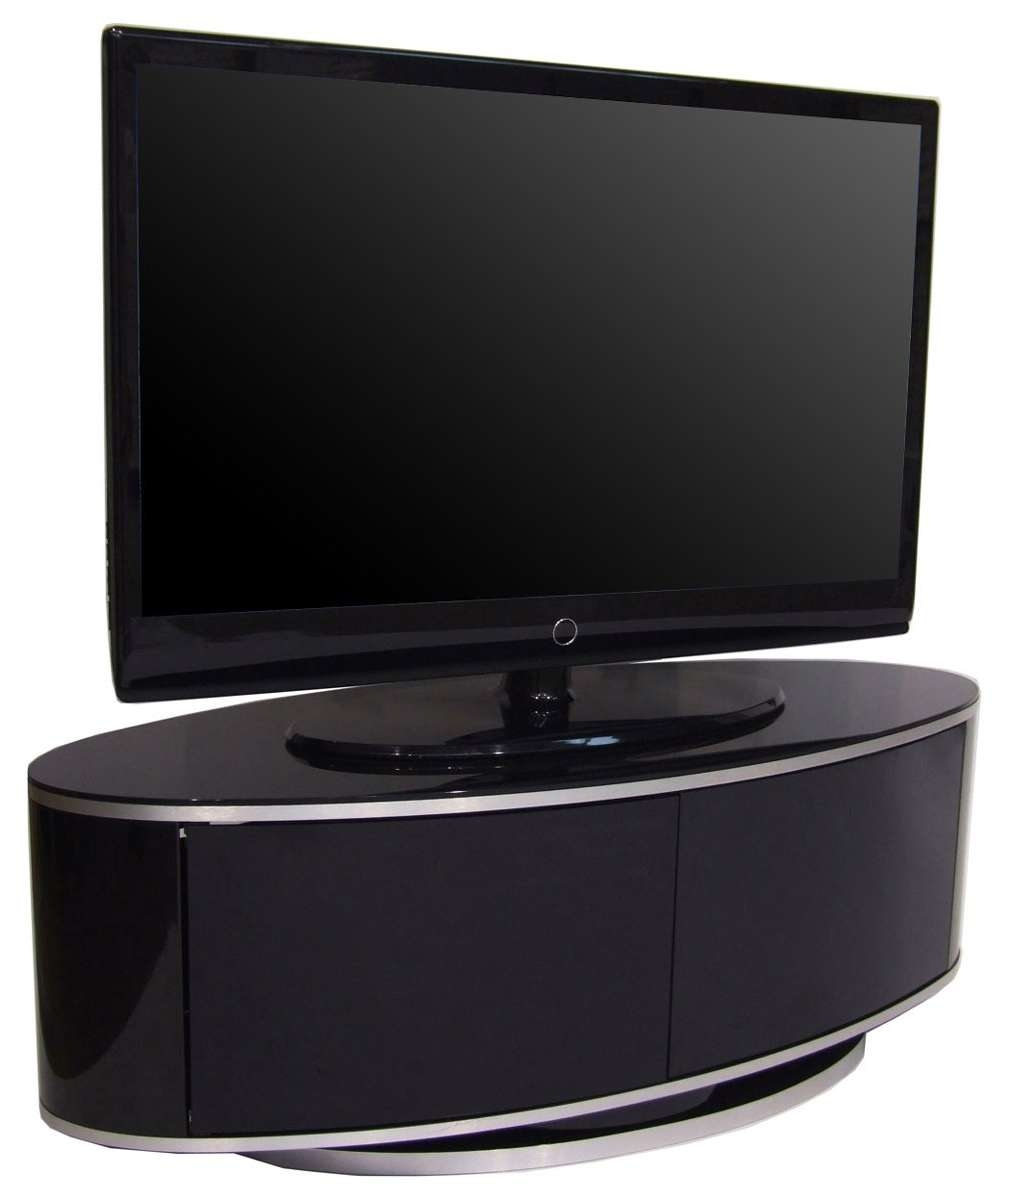 Luna High Gloss Black Oval Tv Cabinet Throughout White High Gloss Corner Tv Stands (View 11 of 20)